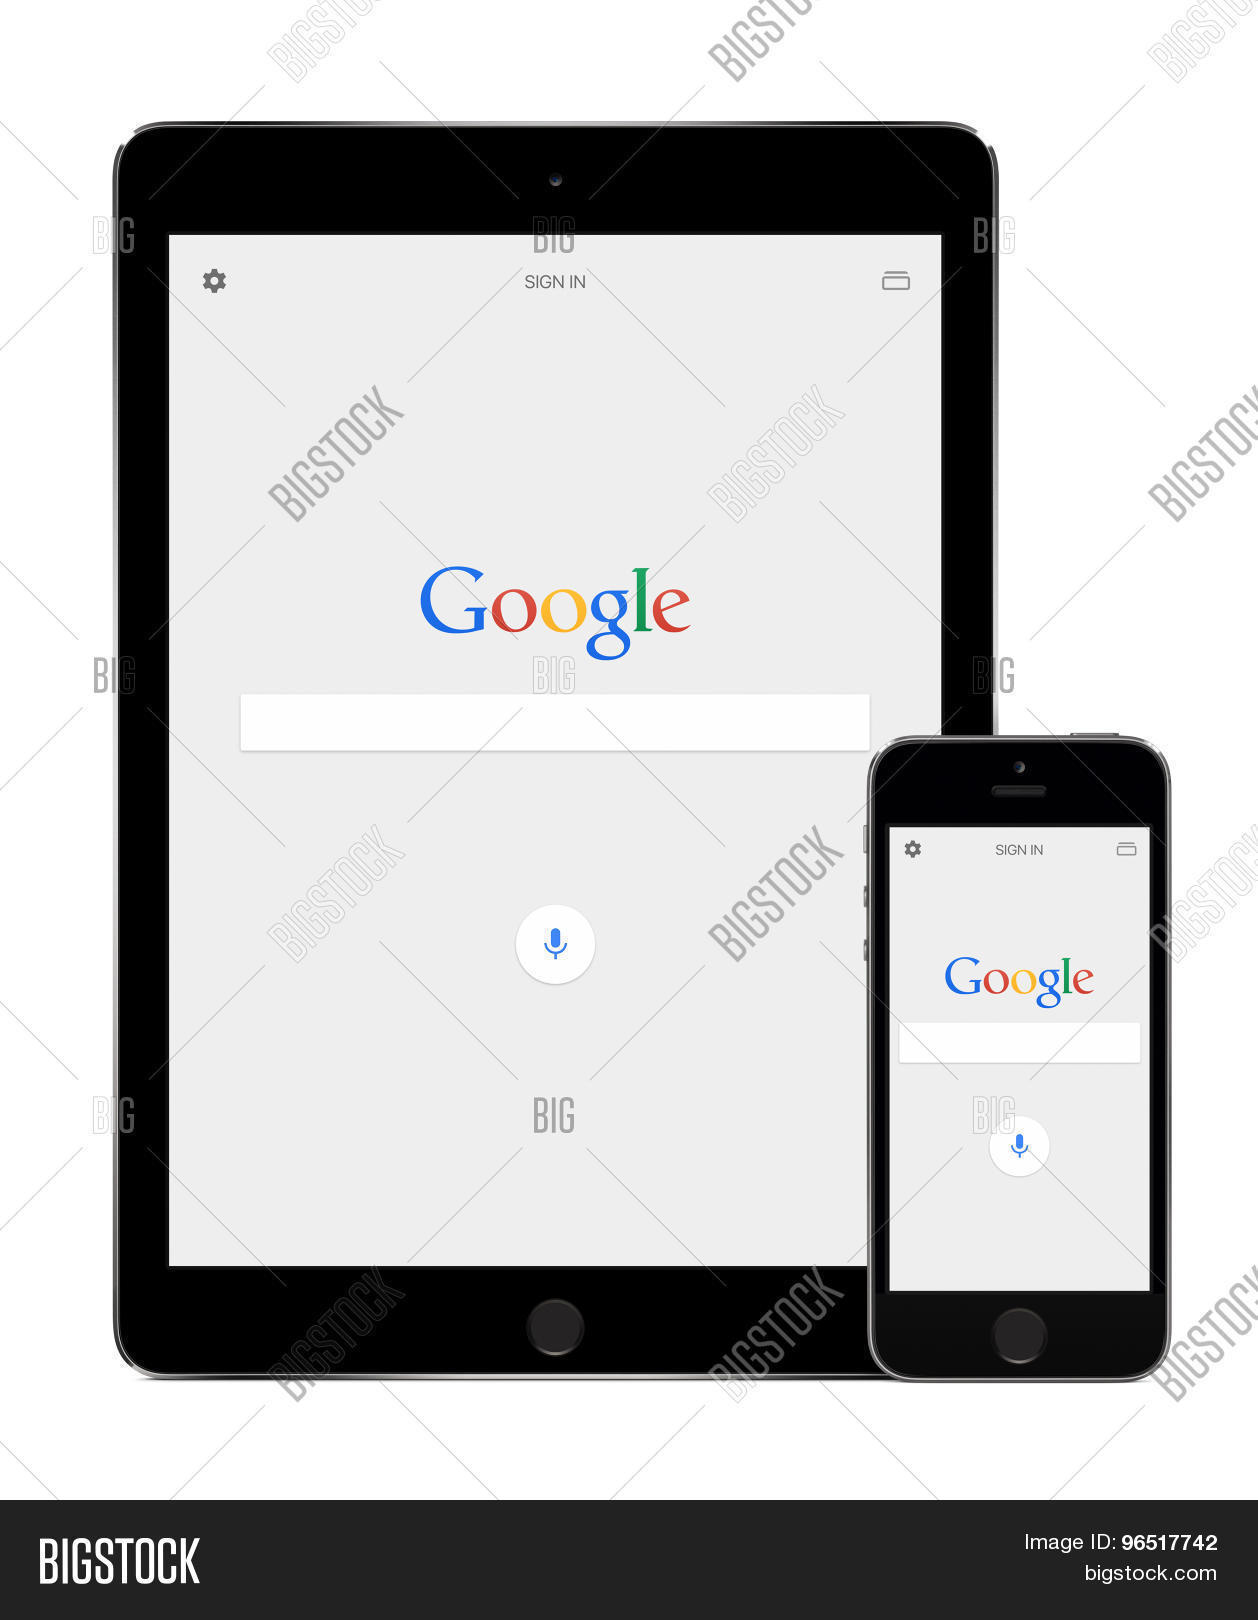 google search app on the apple ipad air 2 and iphone 5s displays stock photo stock images. Black Bedroom Furniture Sets. Home Design Ideas